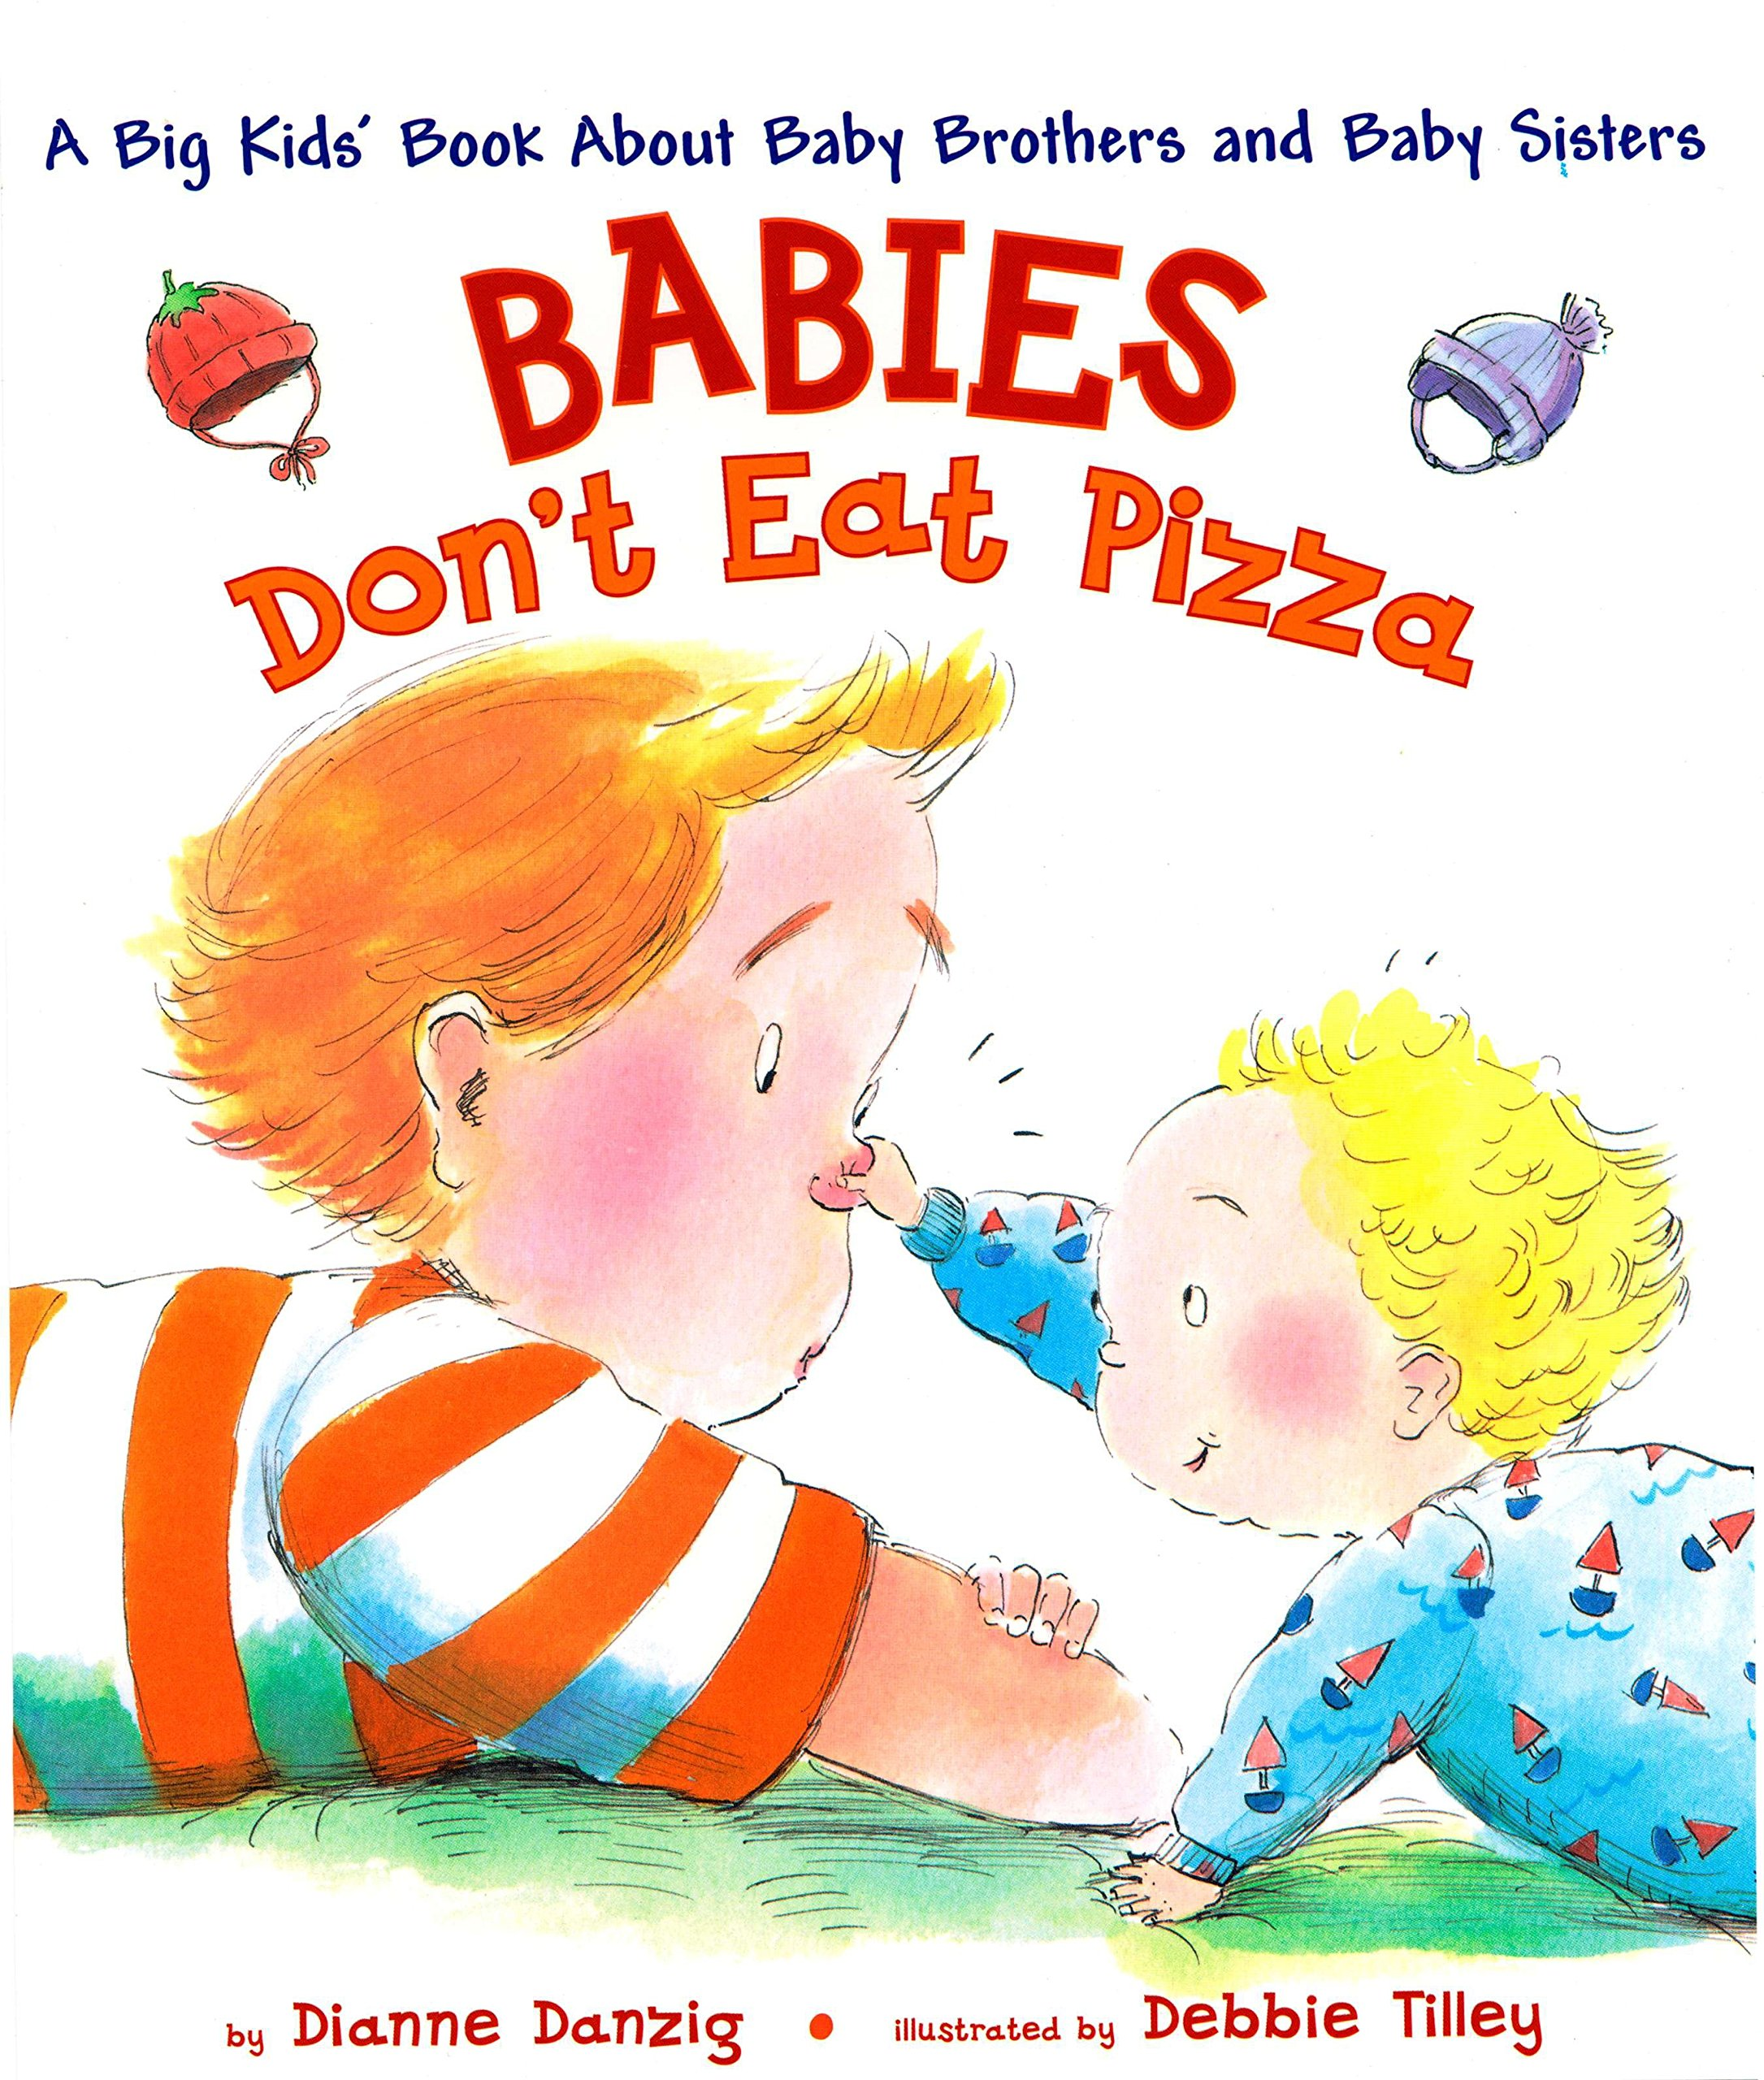 Babies Don't Eat Pizza: A Big Kids' Book About Baby Brothers and Baby Sisters by Dianne Danzig